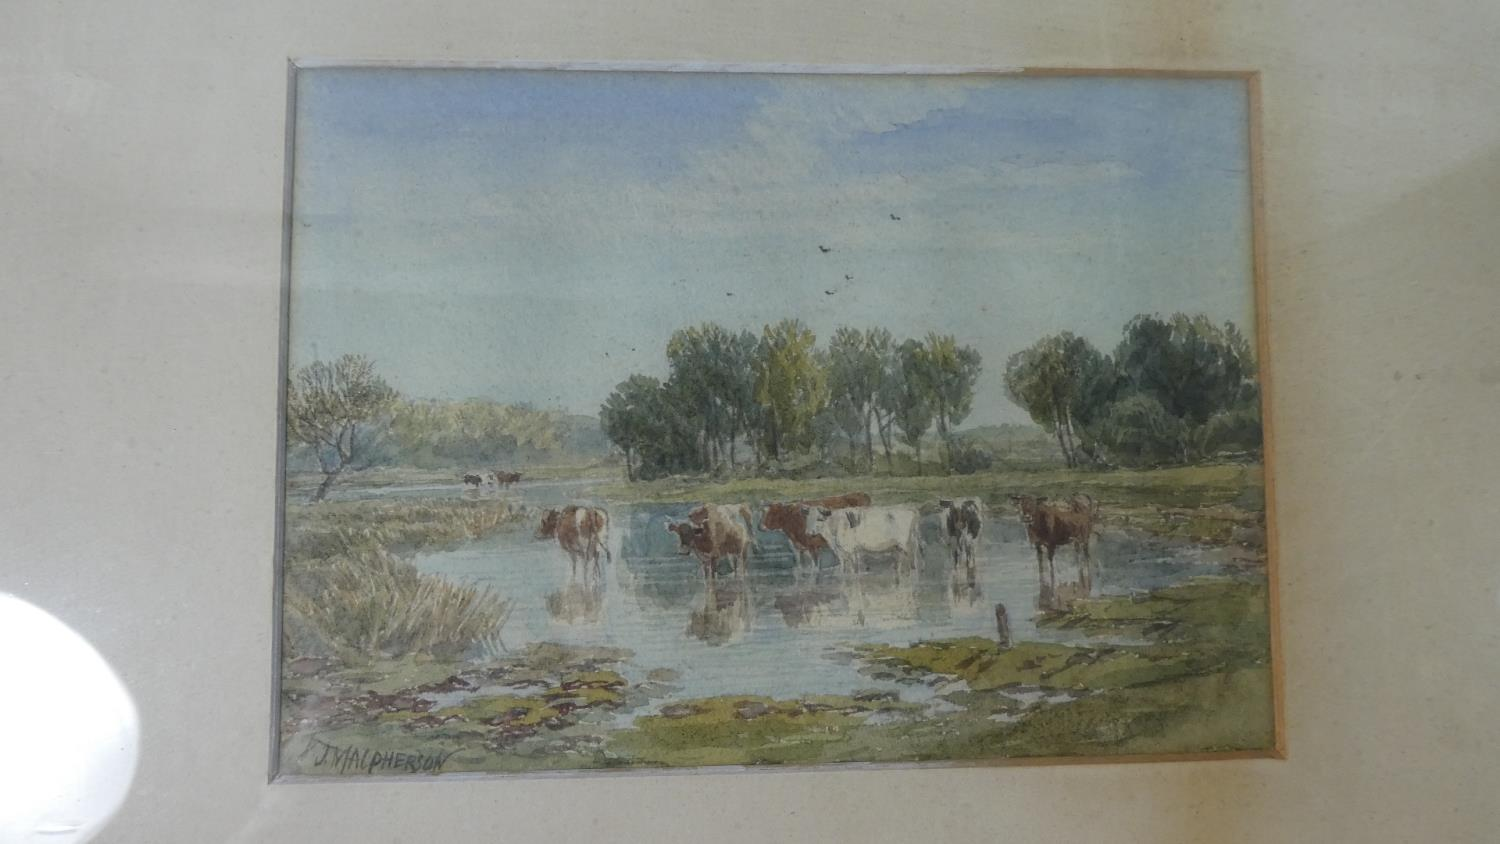 Lot 139 - A Framed Water Colour Depicting Cattle in Pond, 17cm Wide